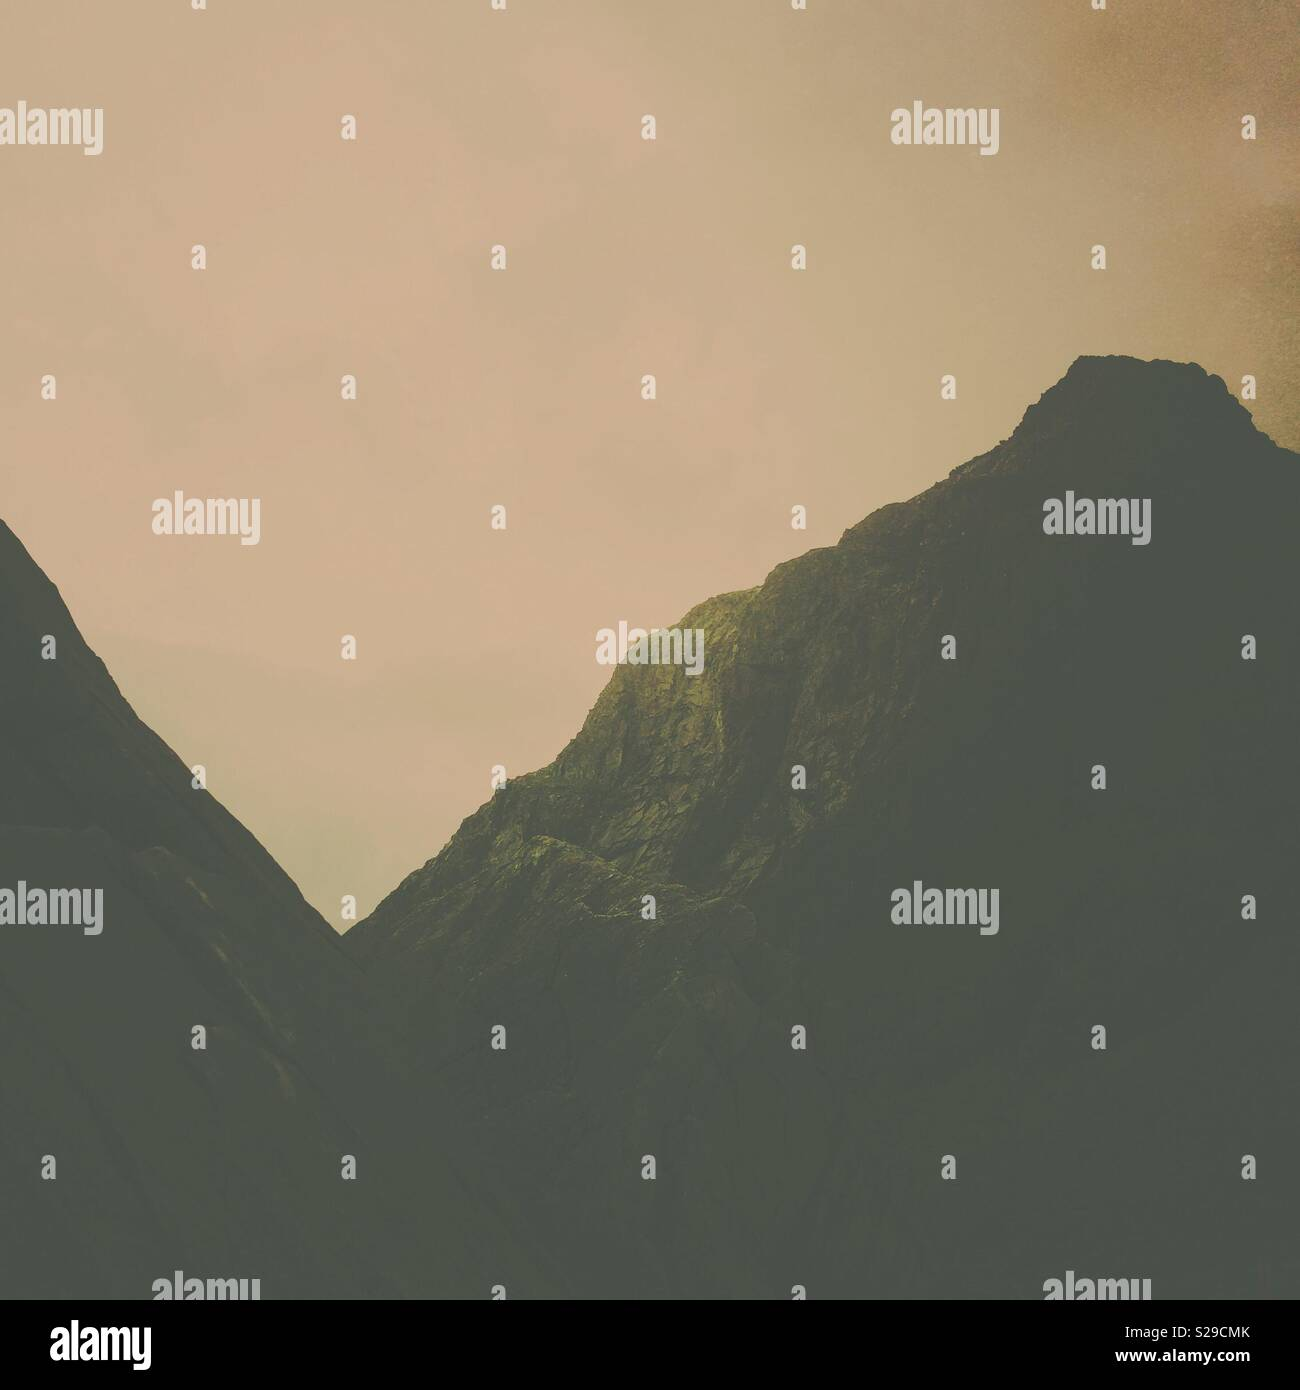 Minimal abstract mountain landscape detail - Stock Image